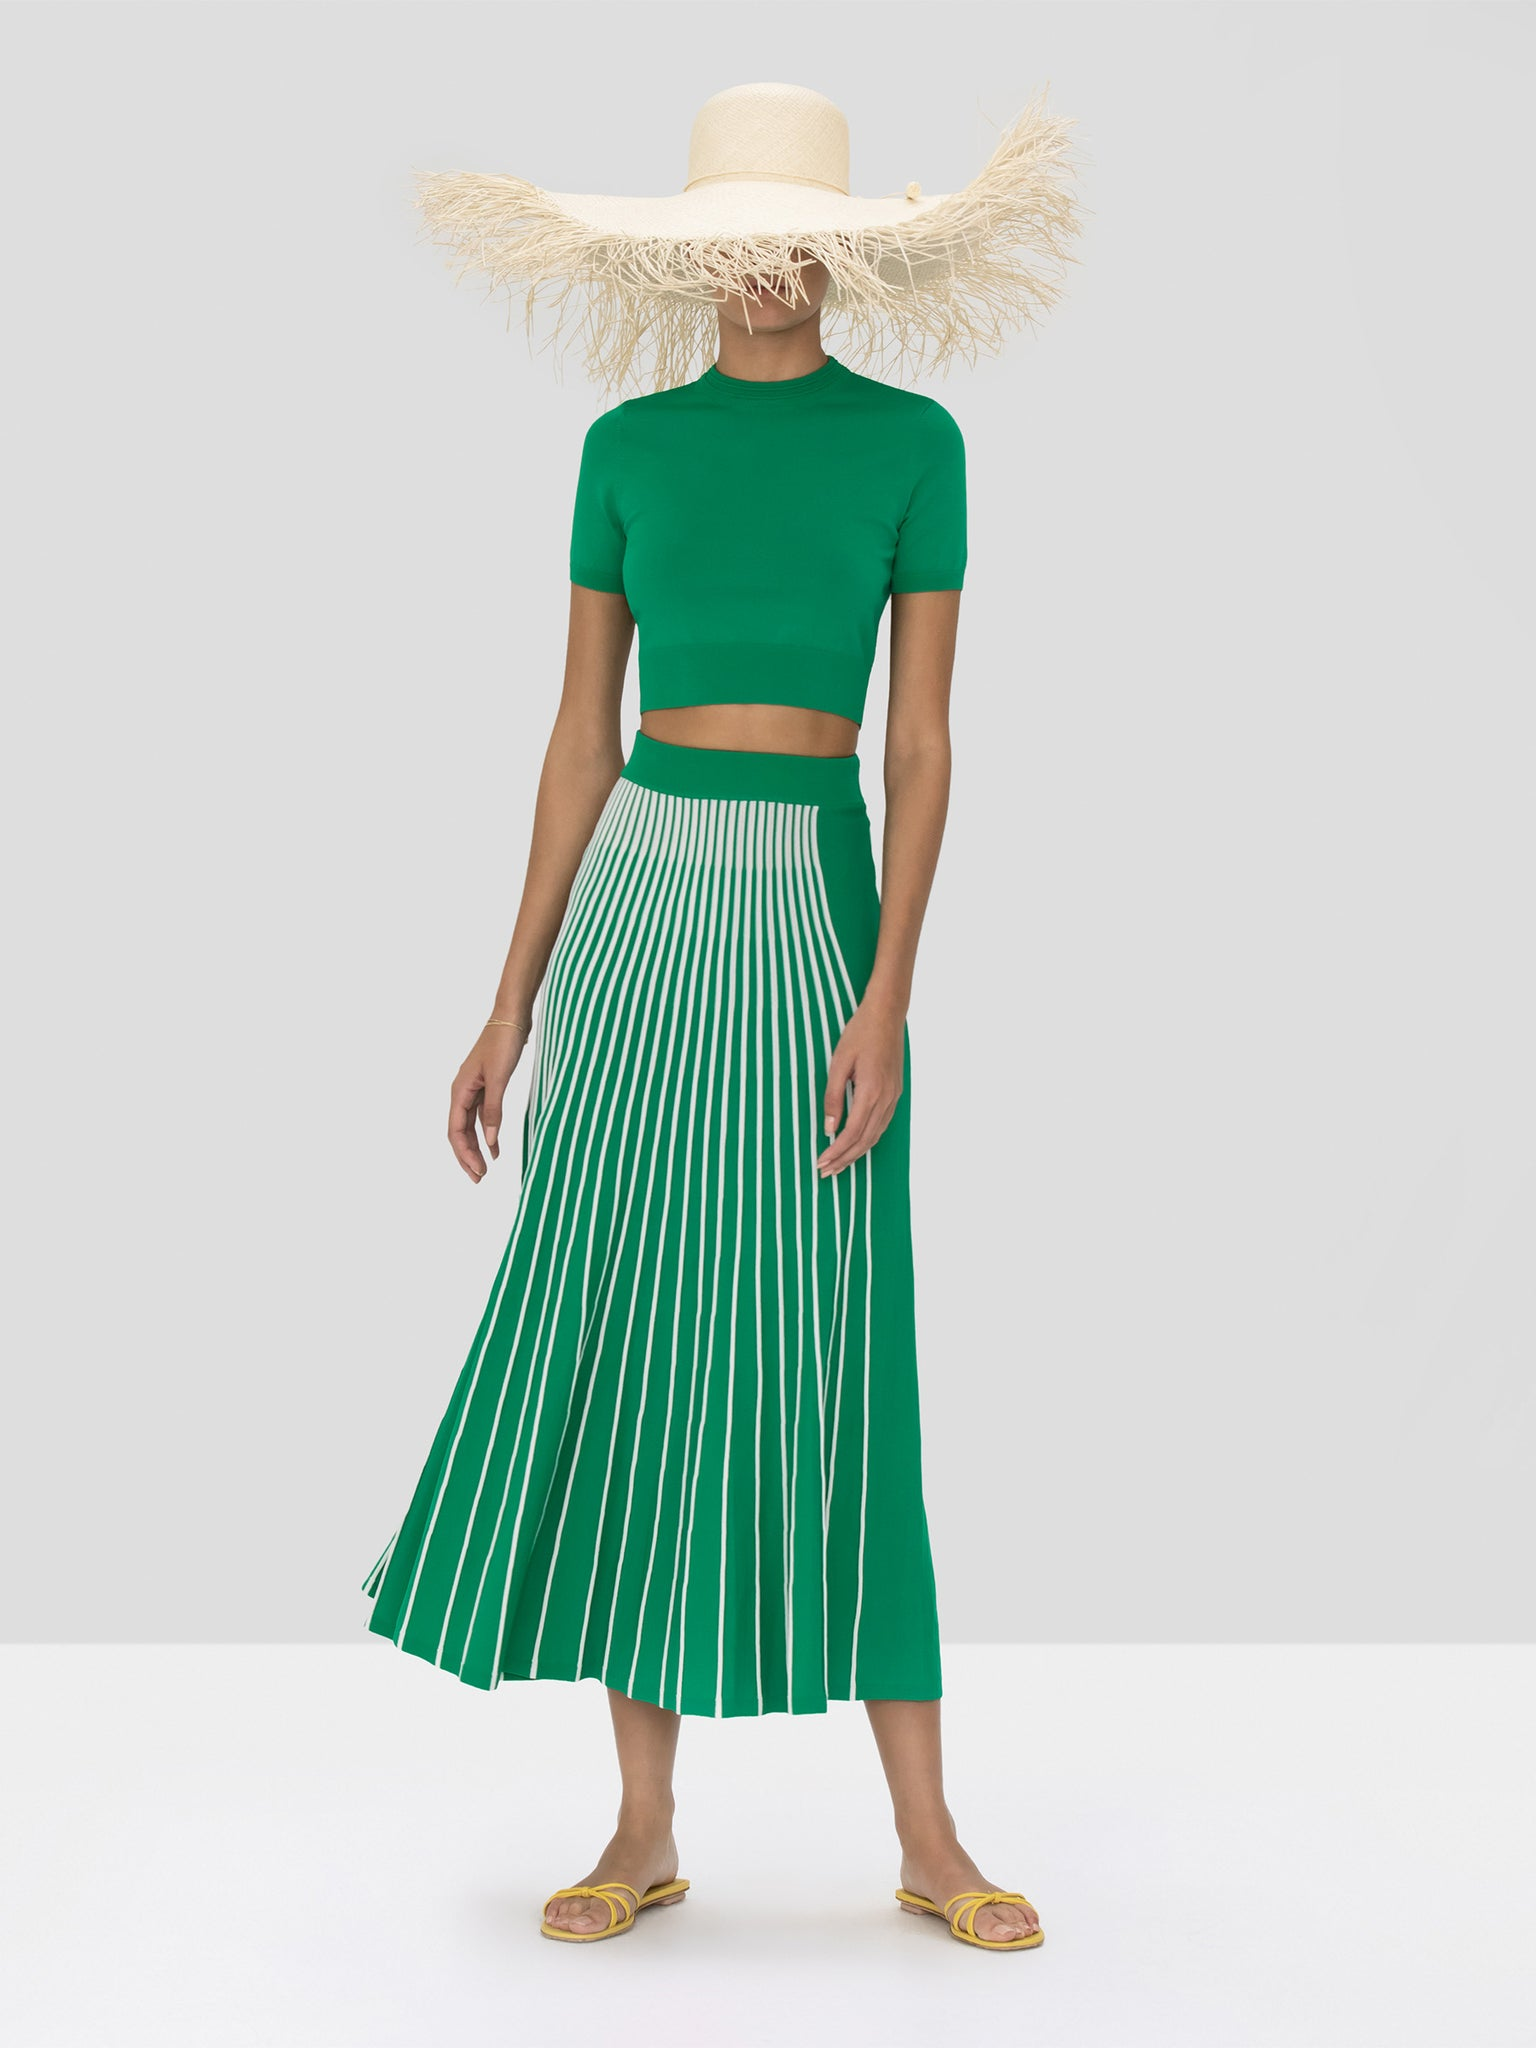 Alexis Vani Skirt in Green and White Stripes and Finzi Crop Top in Green from Spring Summer 2020